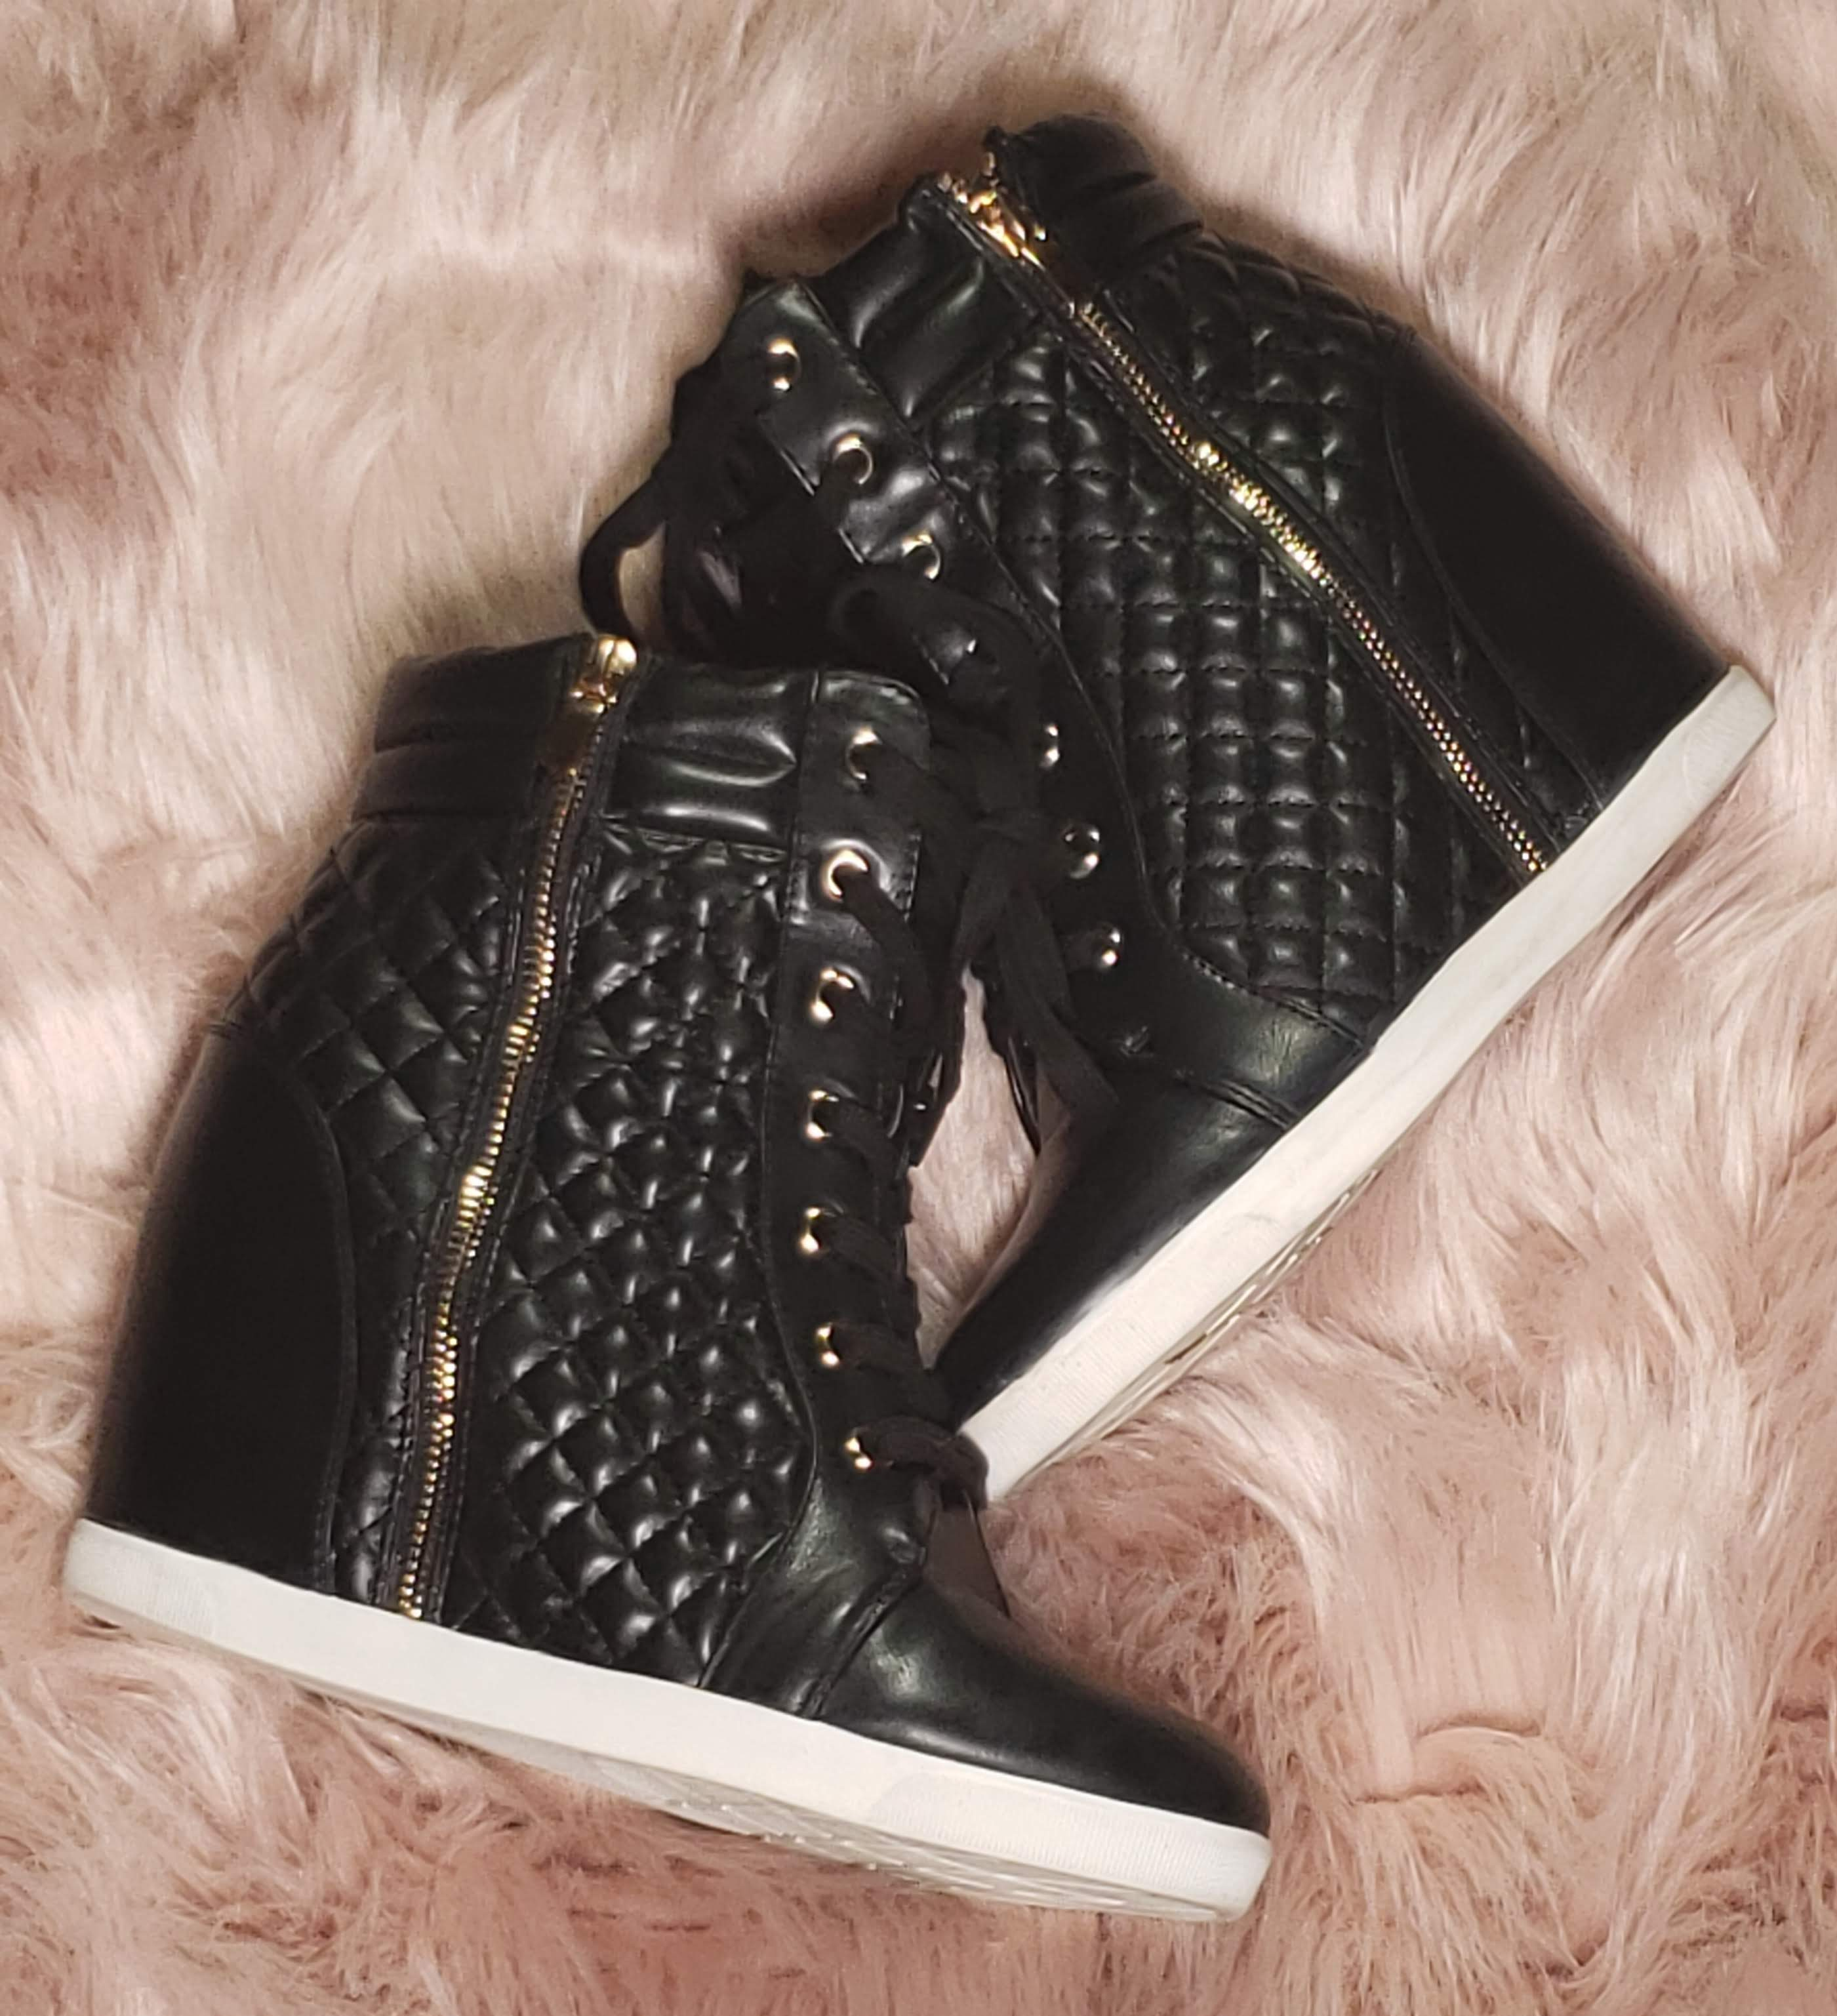 Wedge quilted sneaker